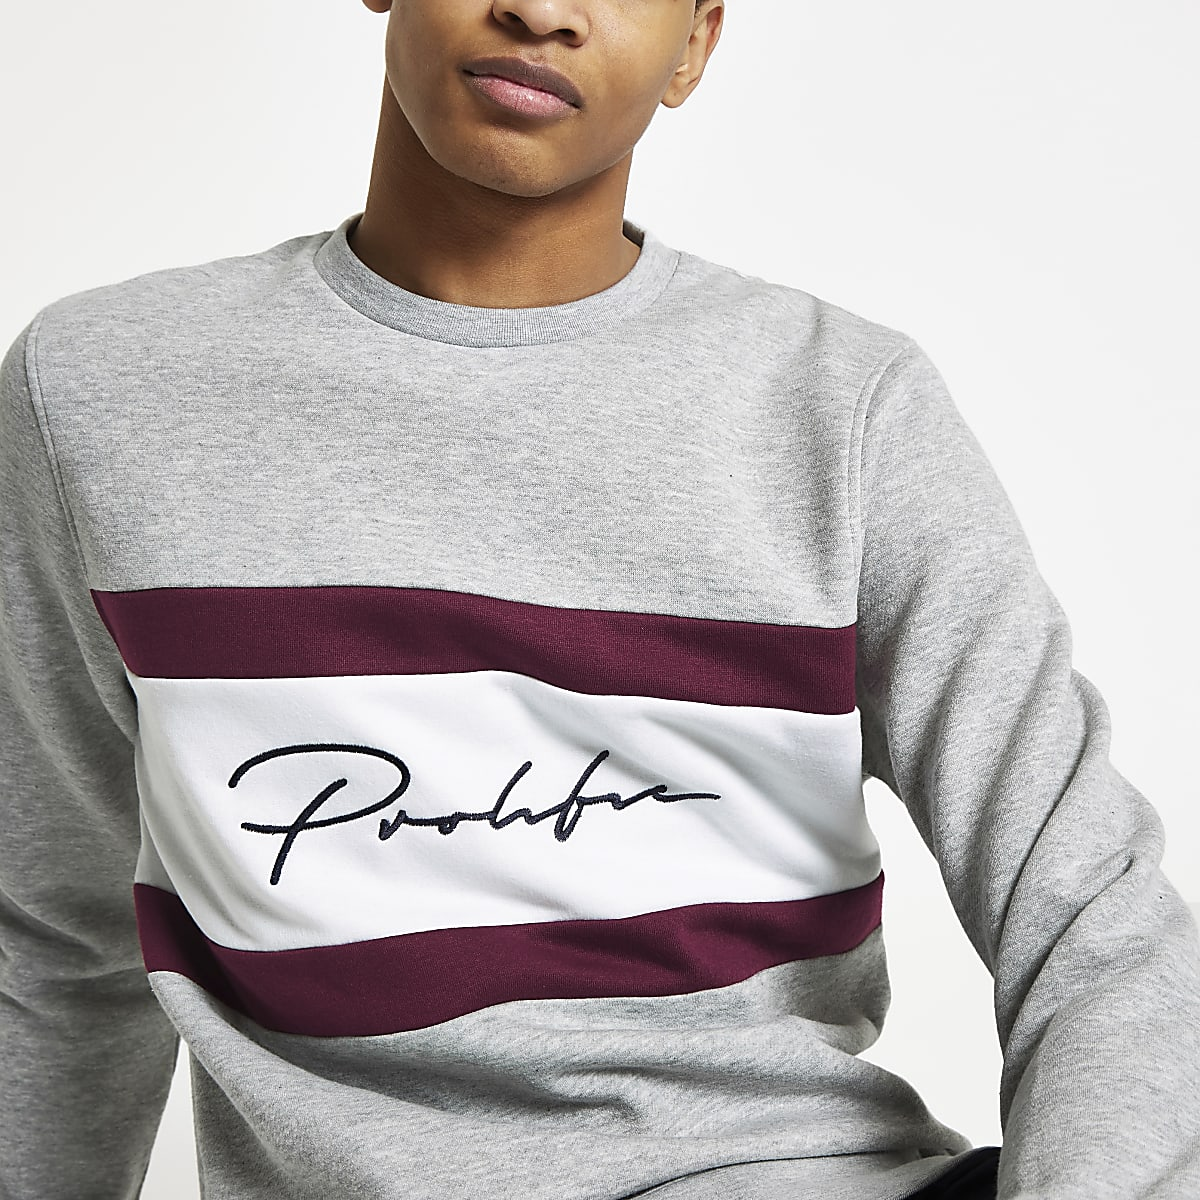 Grey Prolific slim fit sweatshirt